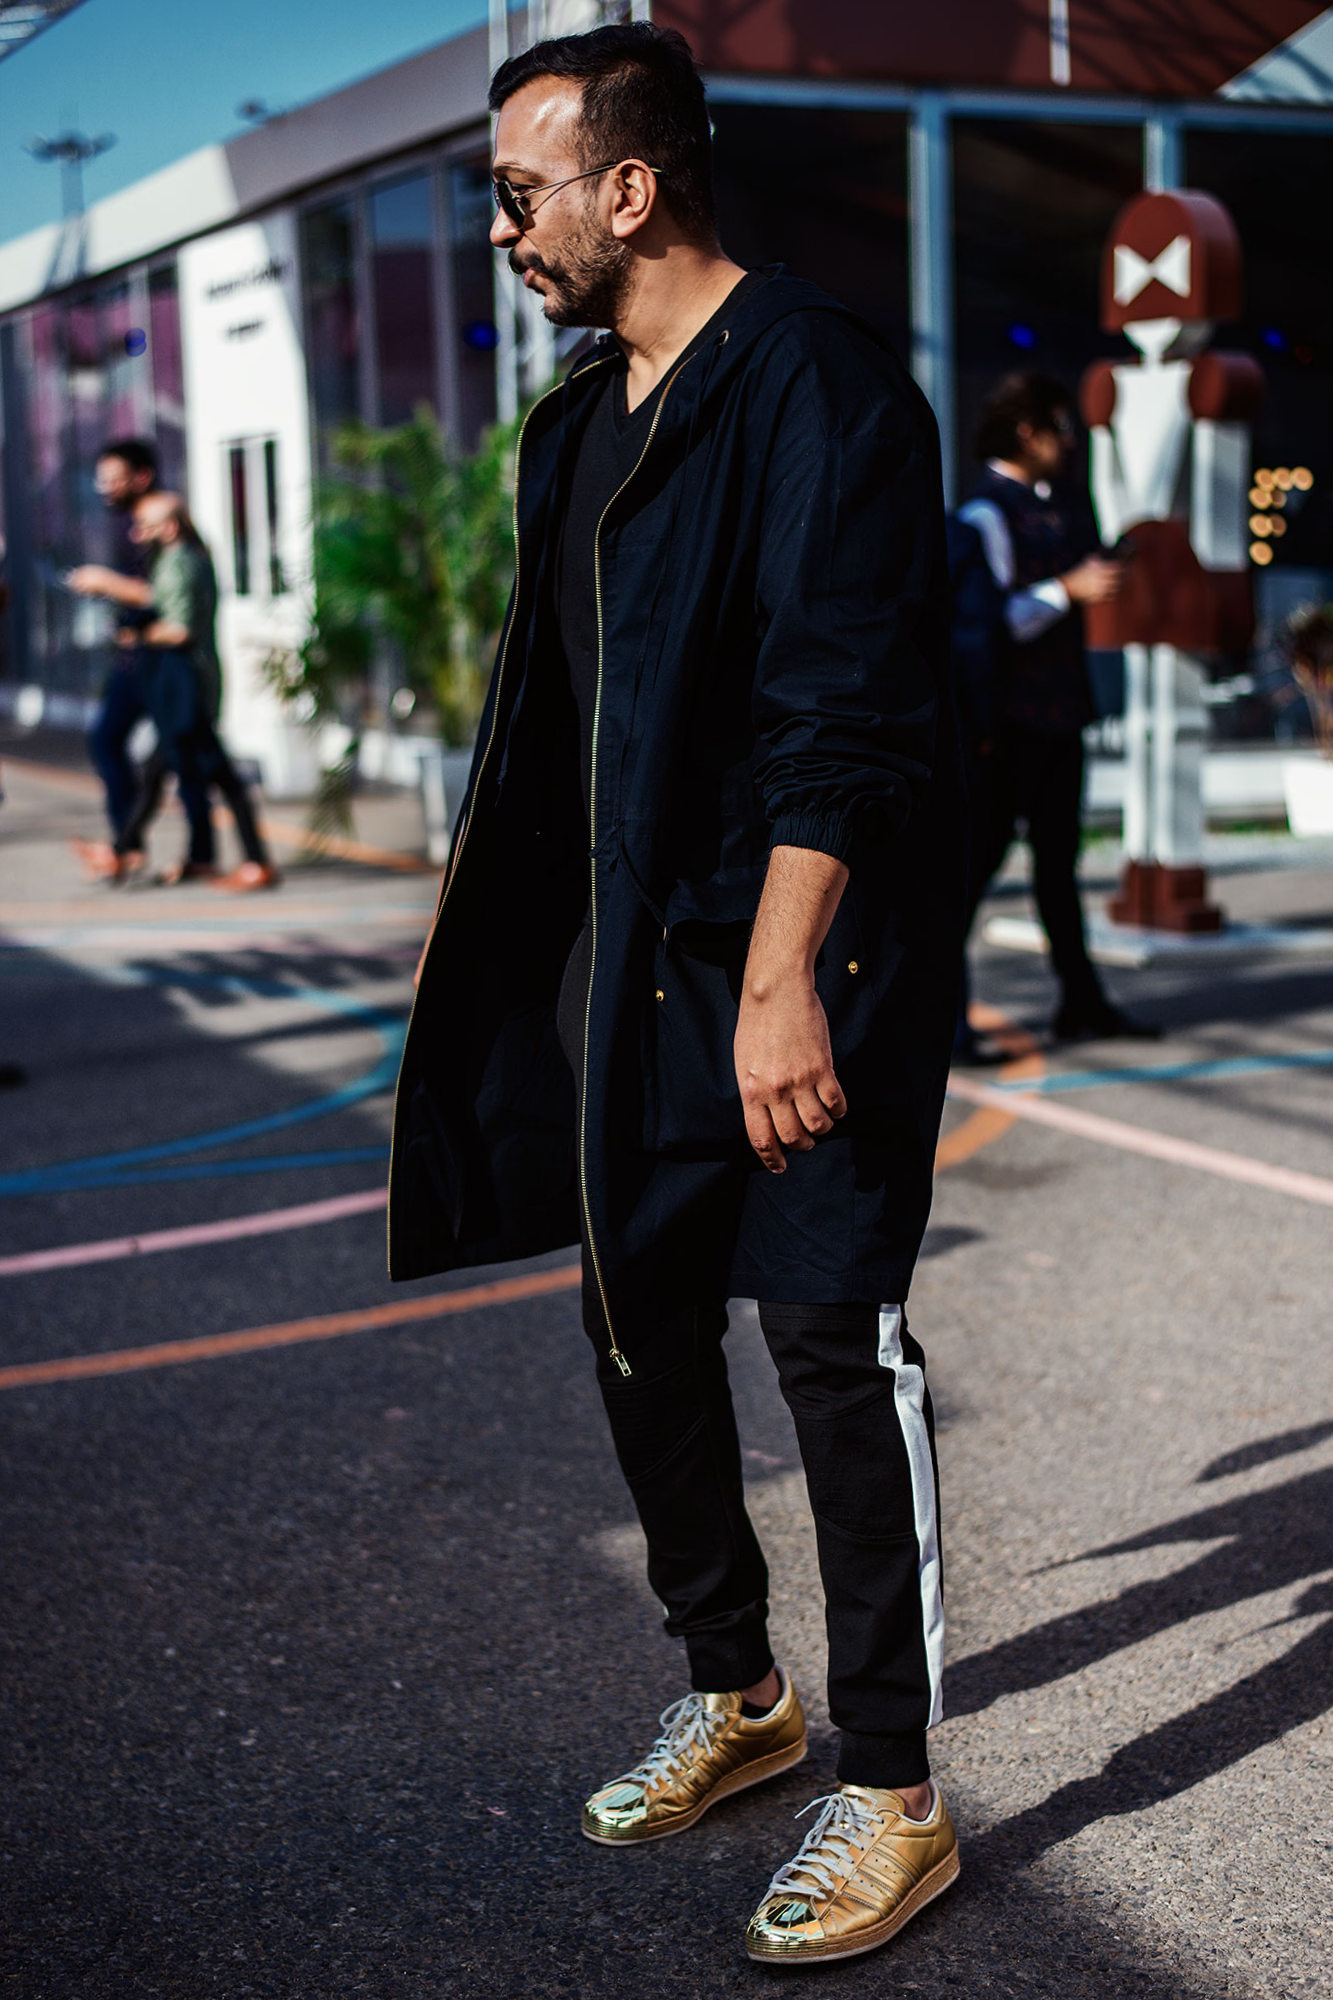 AIFW-AW17-Streetstyle-Rawky-Ksh-5